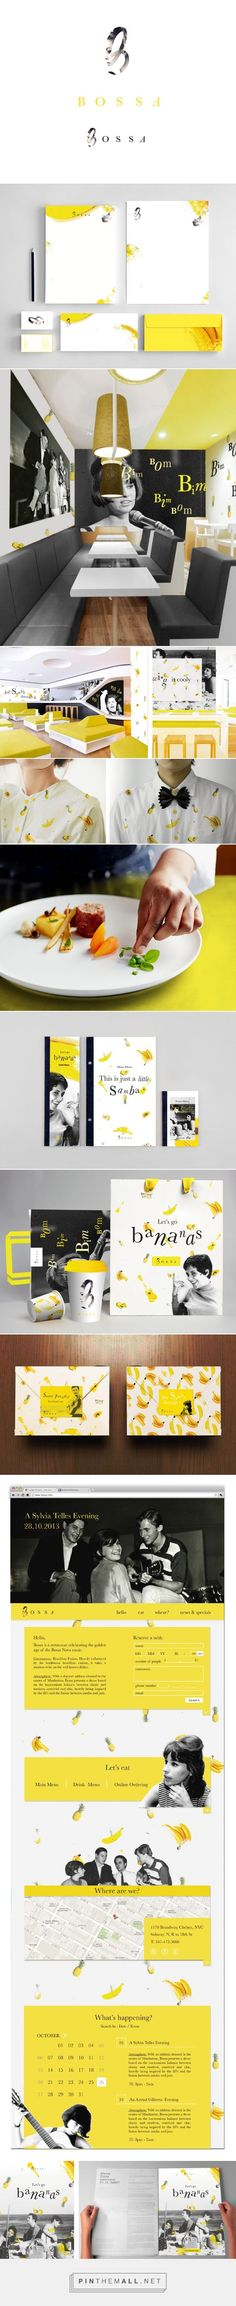 Bossa on Behance curated by Packaging Diva PD. Let's go bananas for the Bossa Nova packaging